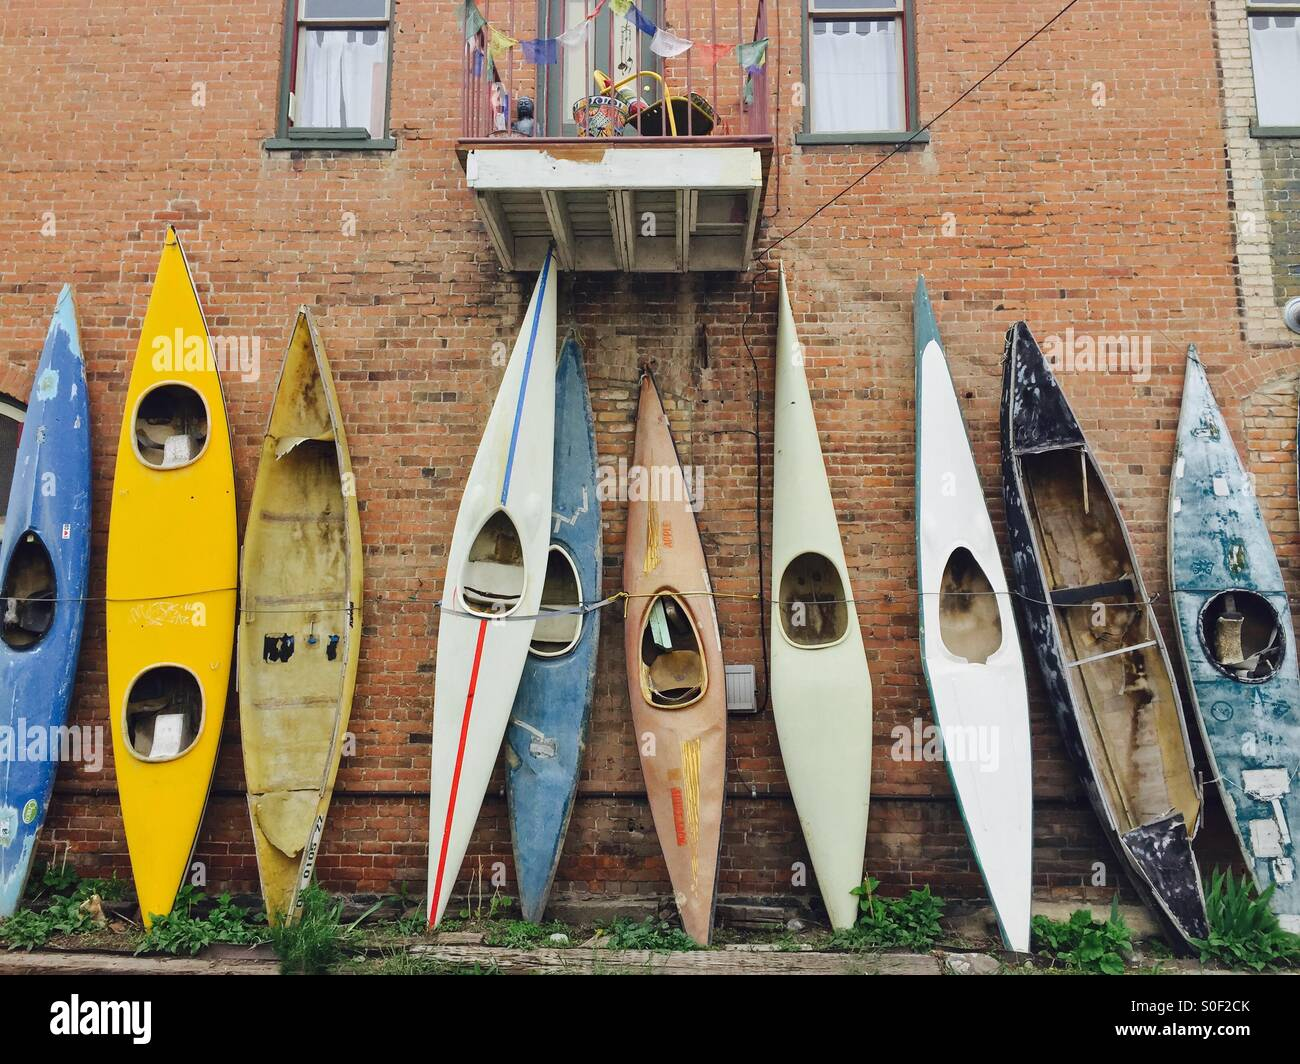 Kayaks in a row - Stock Image